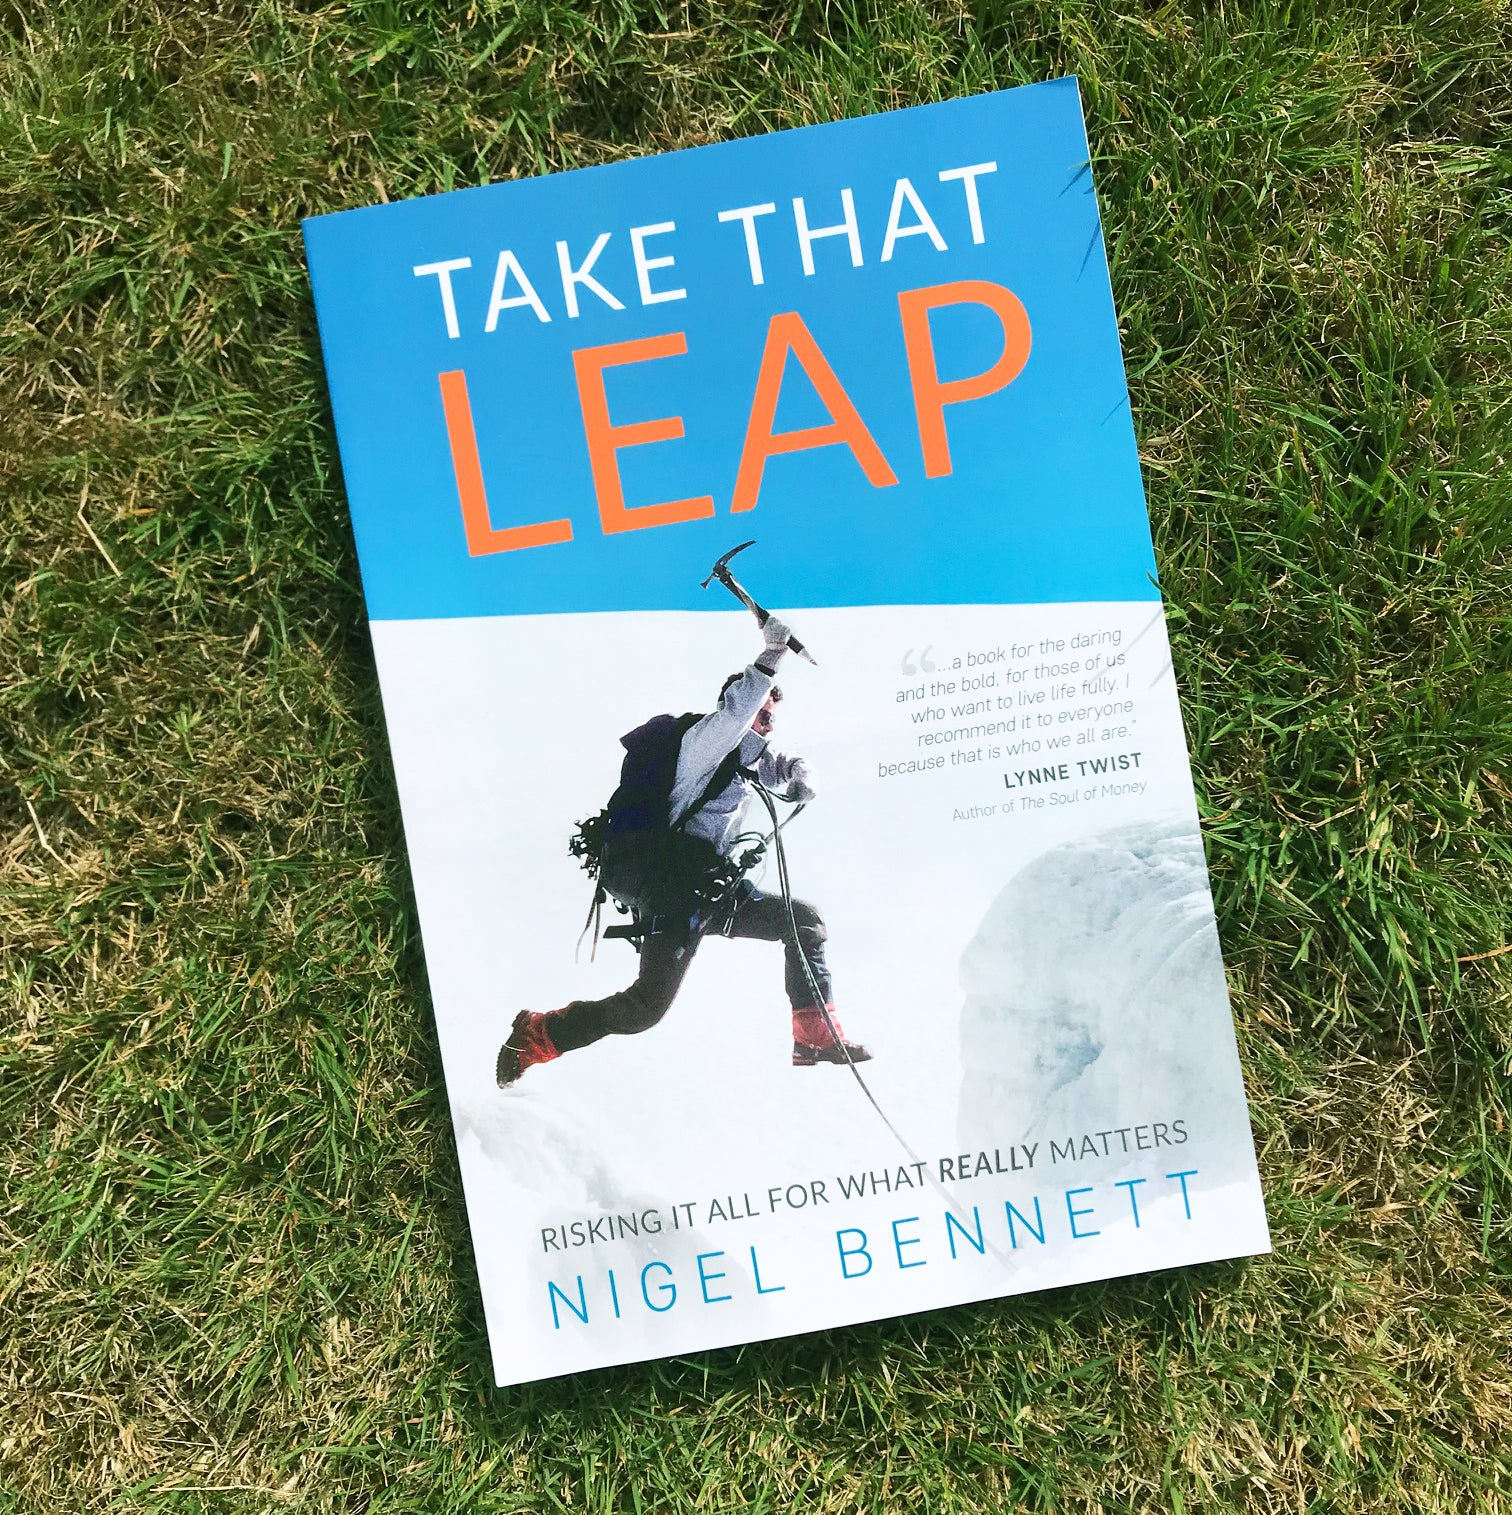 Take That Leap - by Nigel Bennett, BCIT alumnus